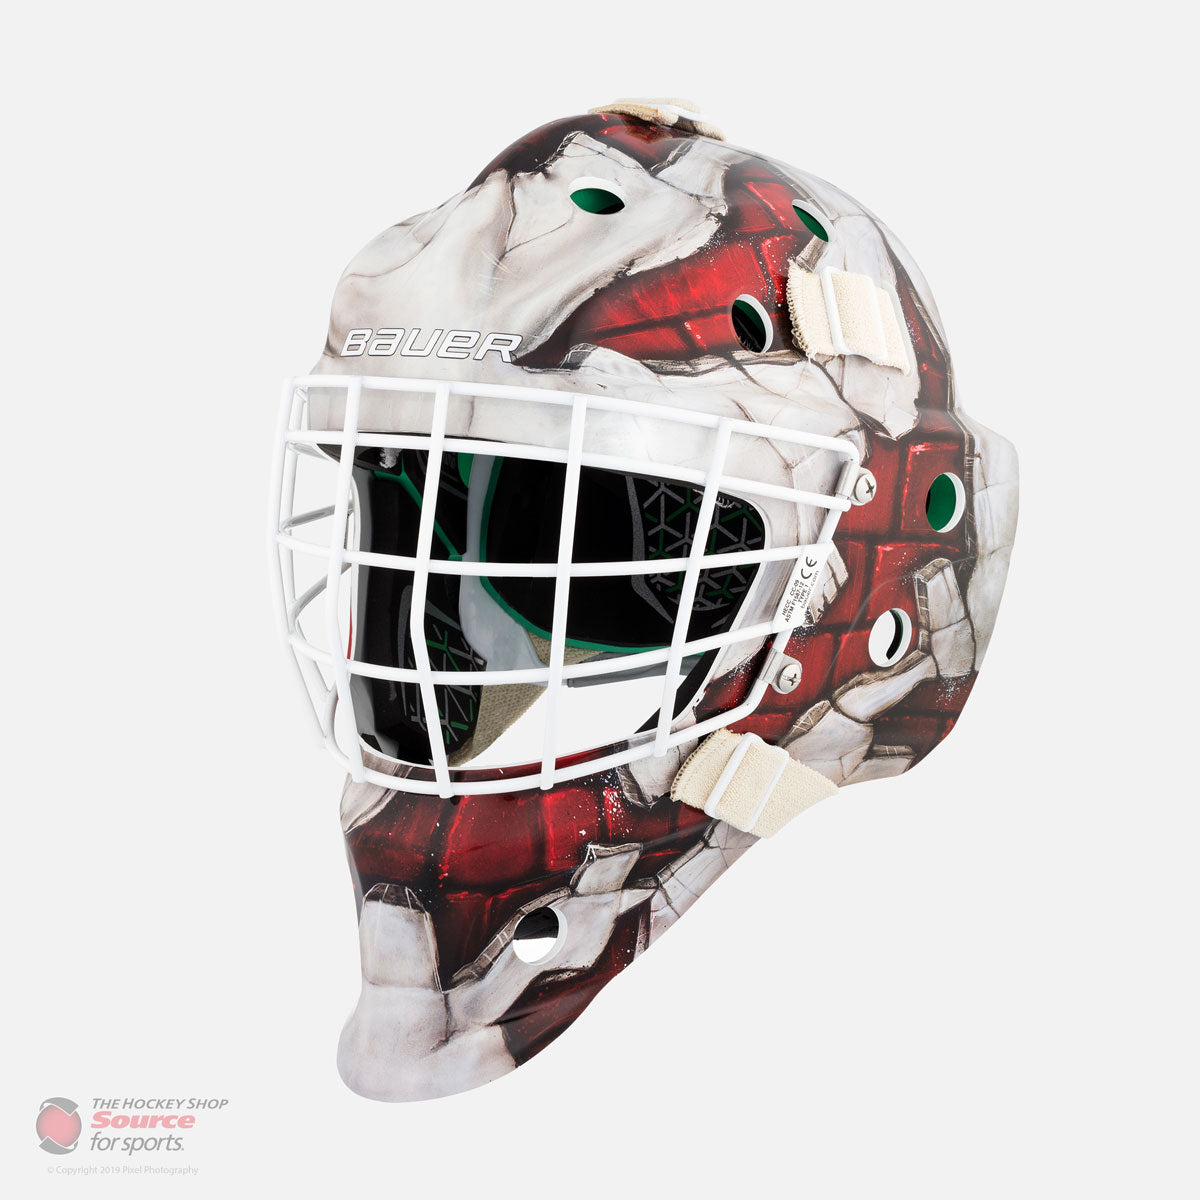 Bauer NME 4 Youth Goalie Mask - Red Wall